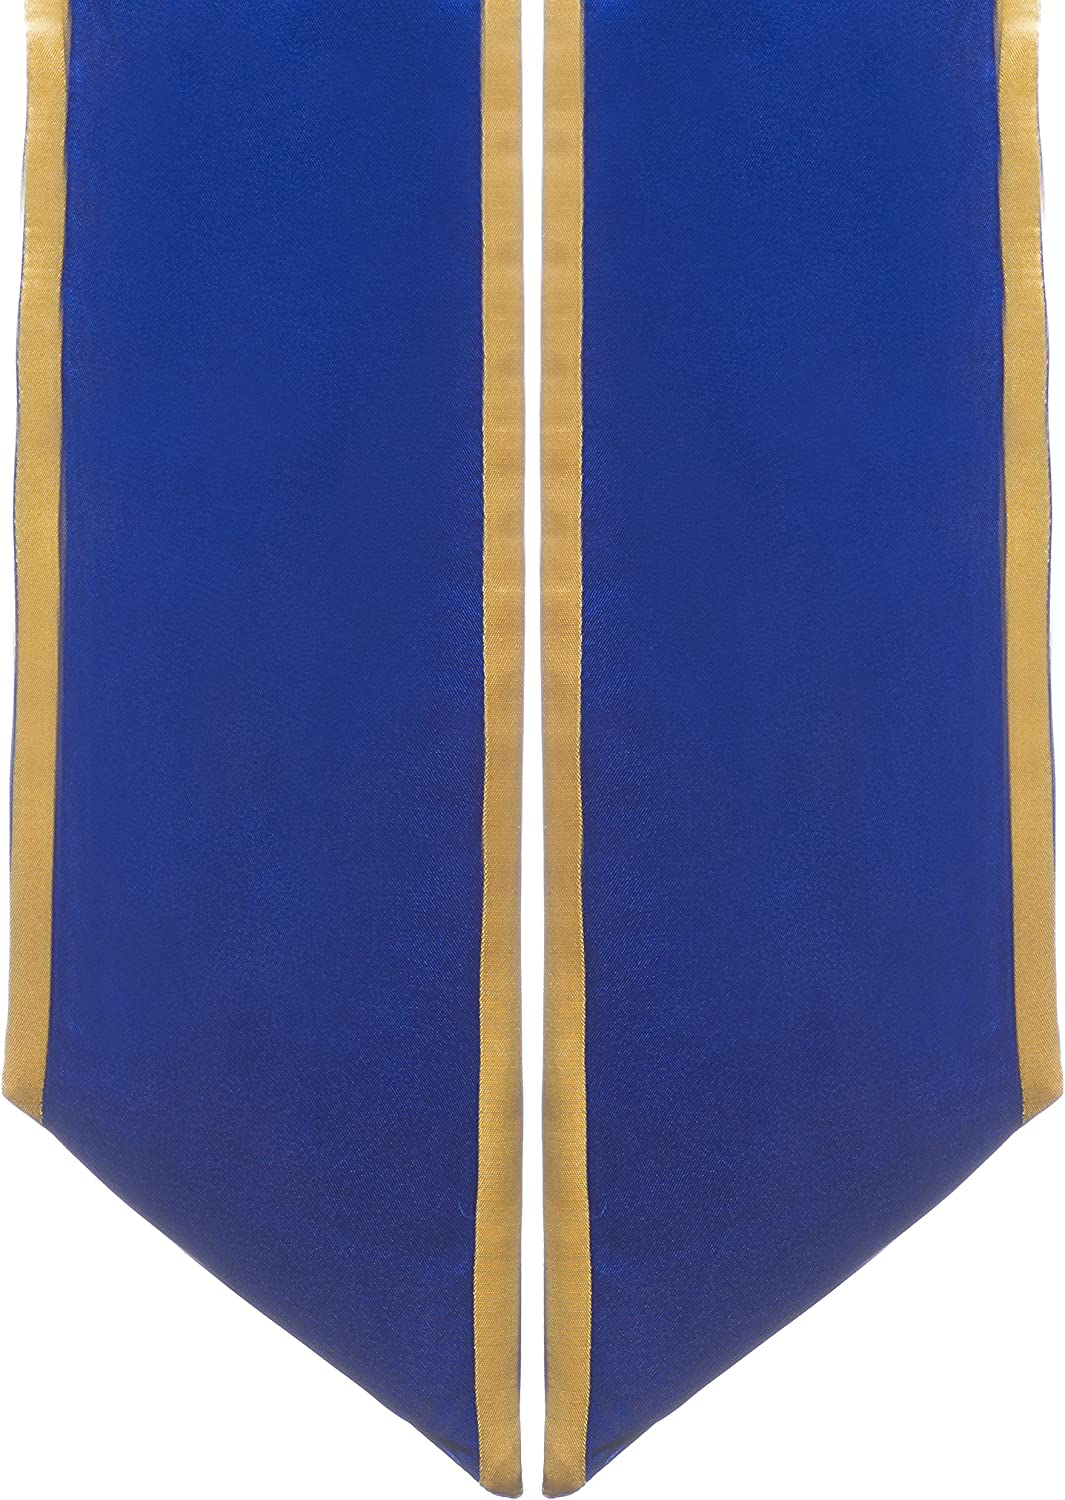 Graduation Honor Stoles Angled Cut and Trim